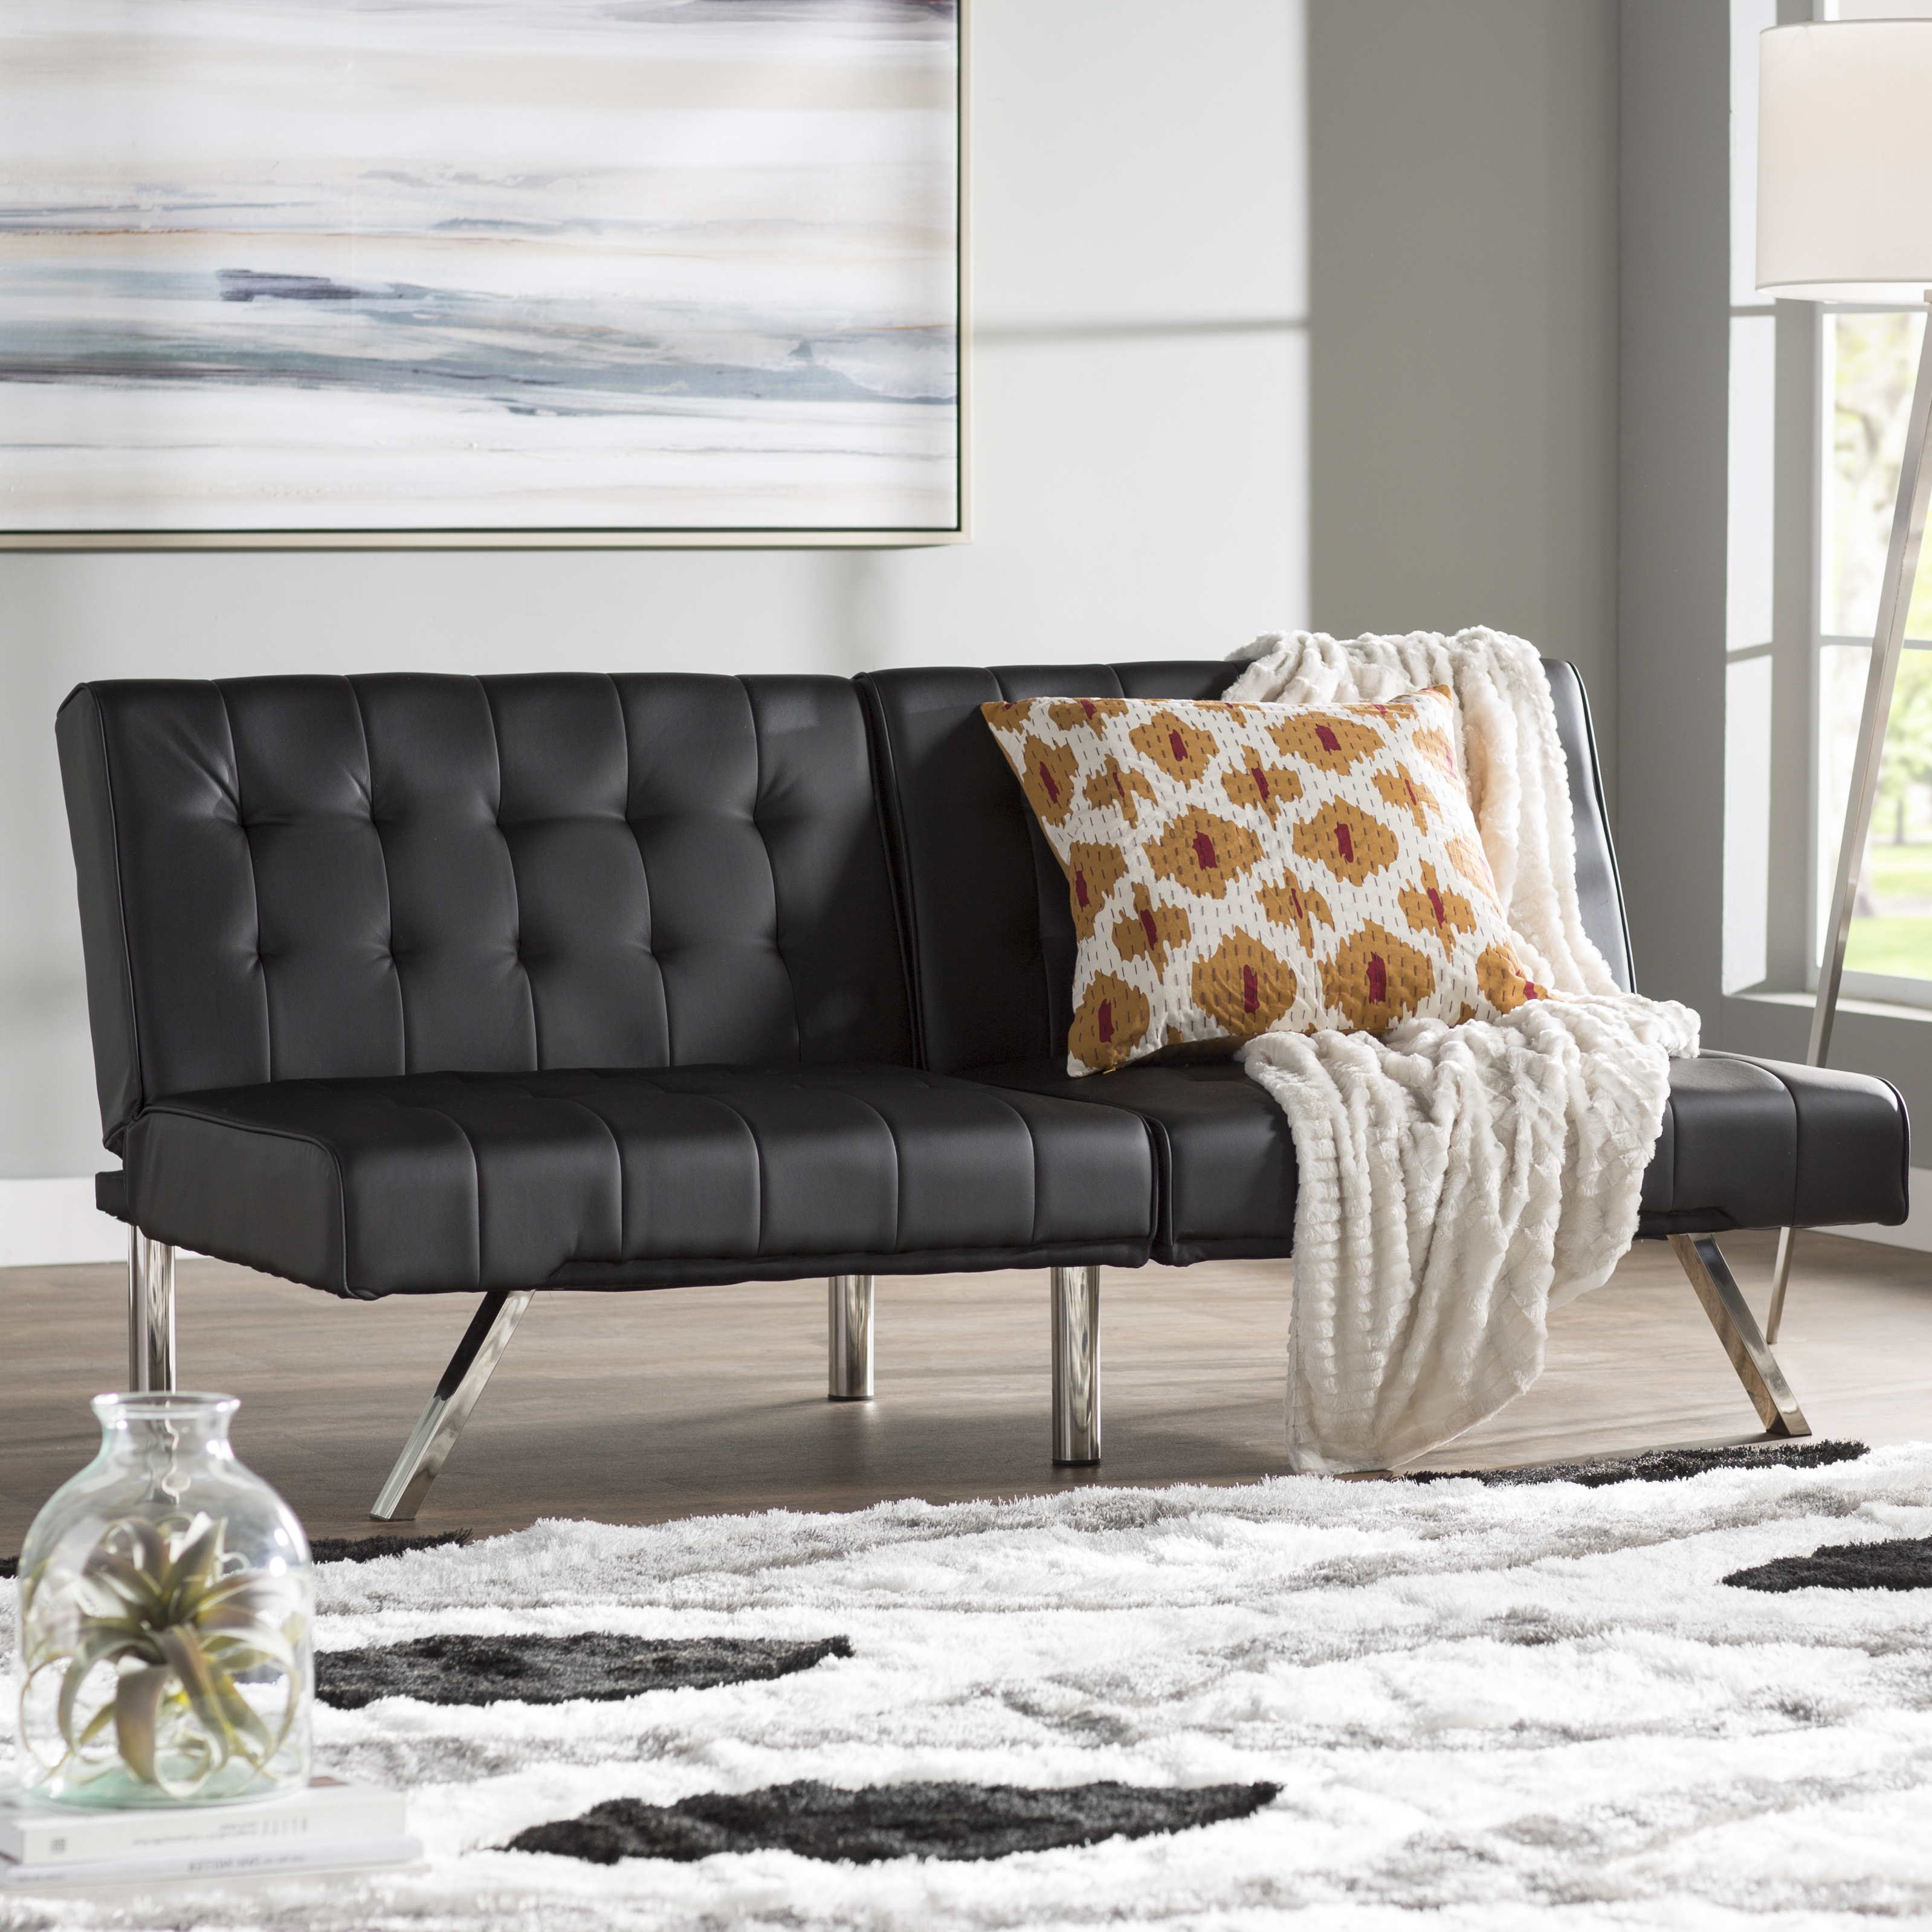 Sofas Amp Sectionals Up To 80 Off With Labor Day Sales